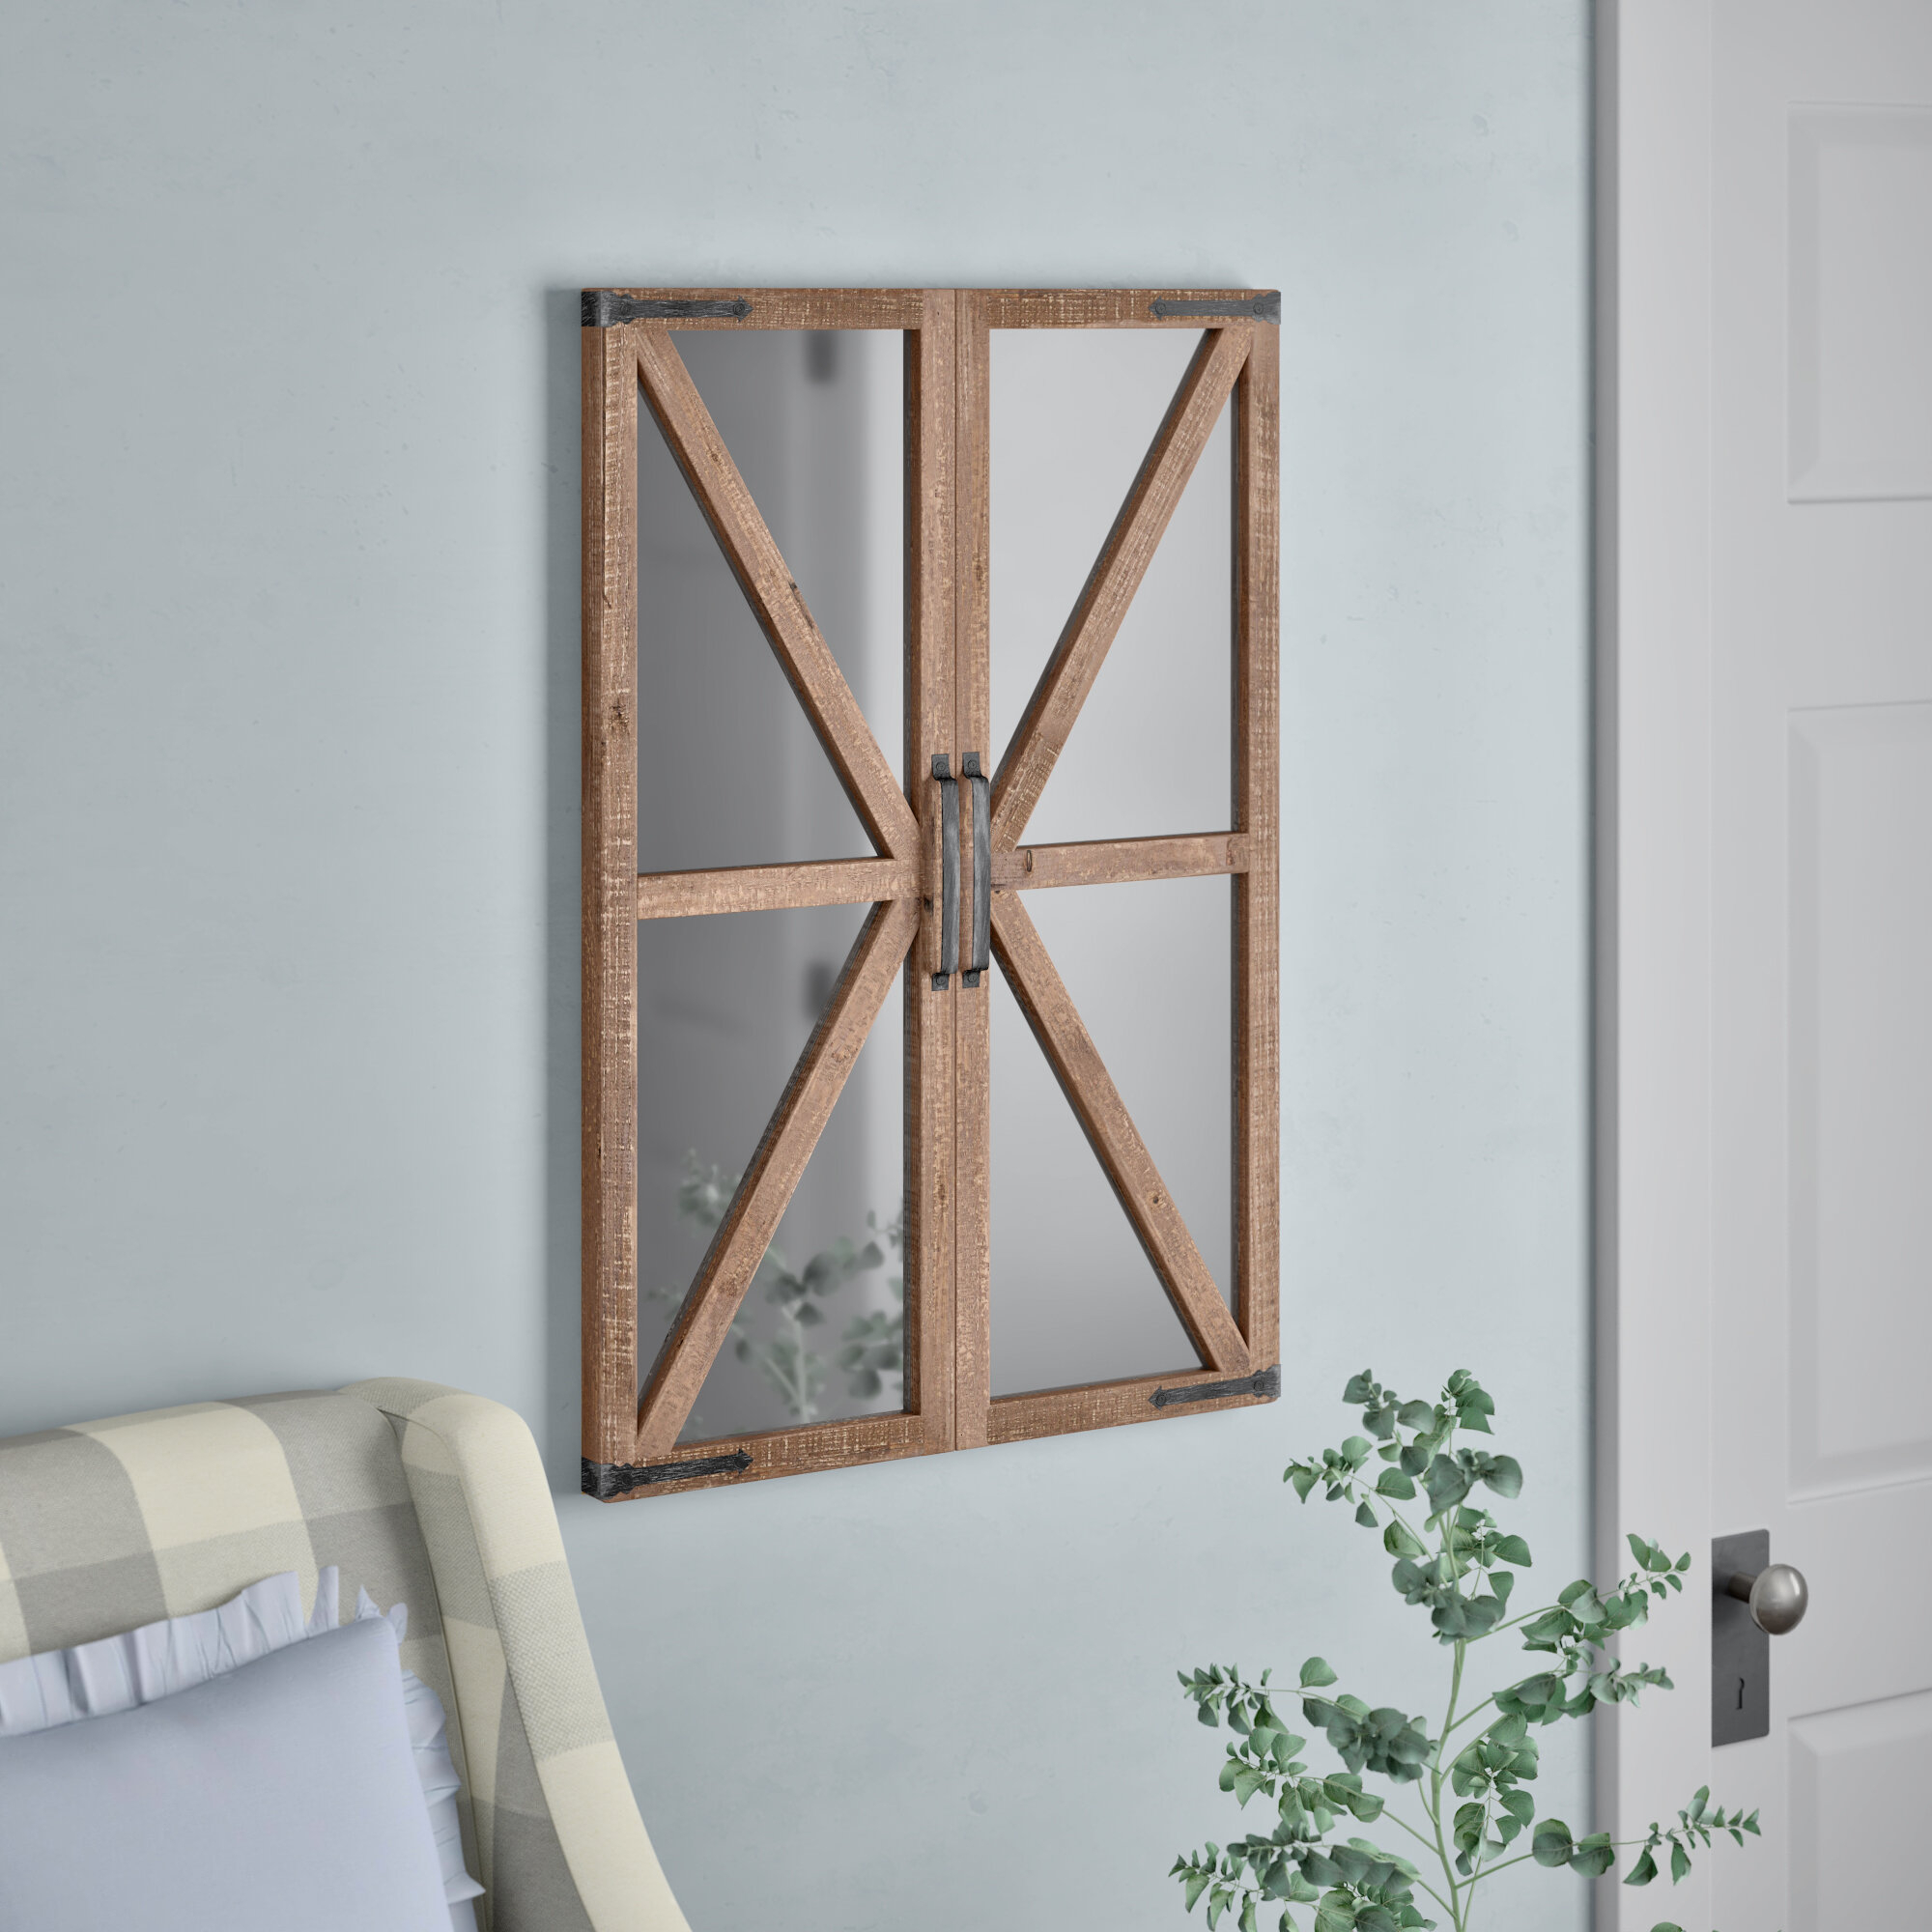 Verner Farmhouse Wall Mirror Intended For Kist Farmhouse Wall Mirrors (View 20 of 20)